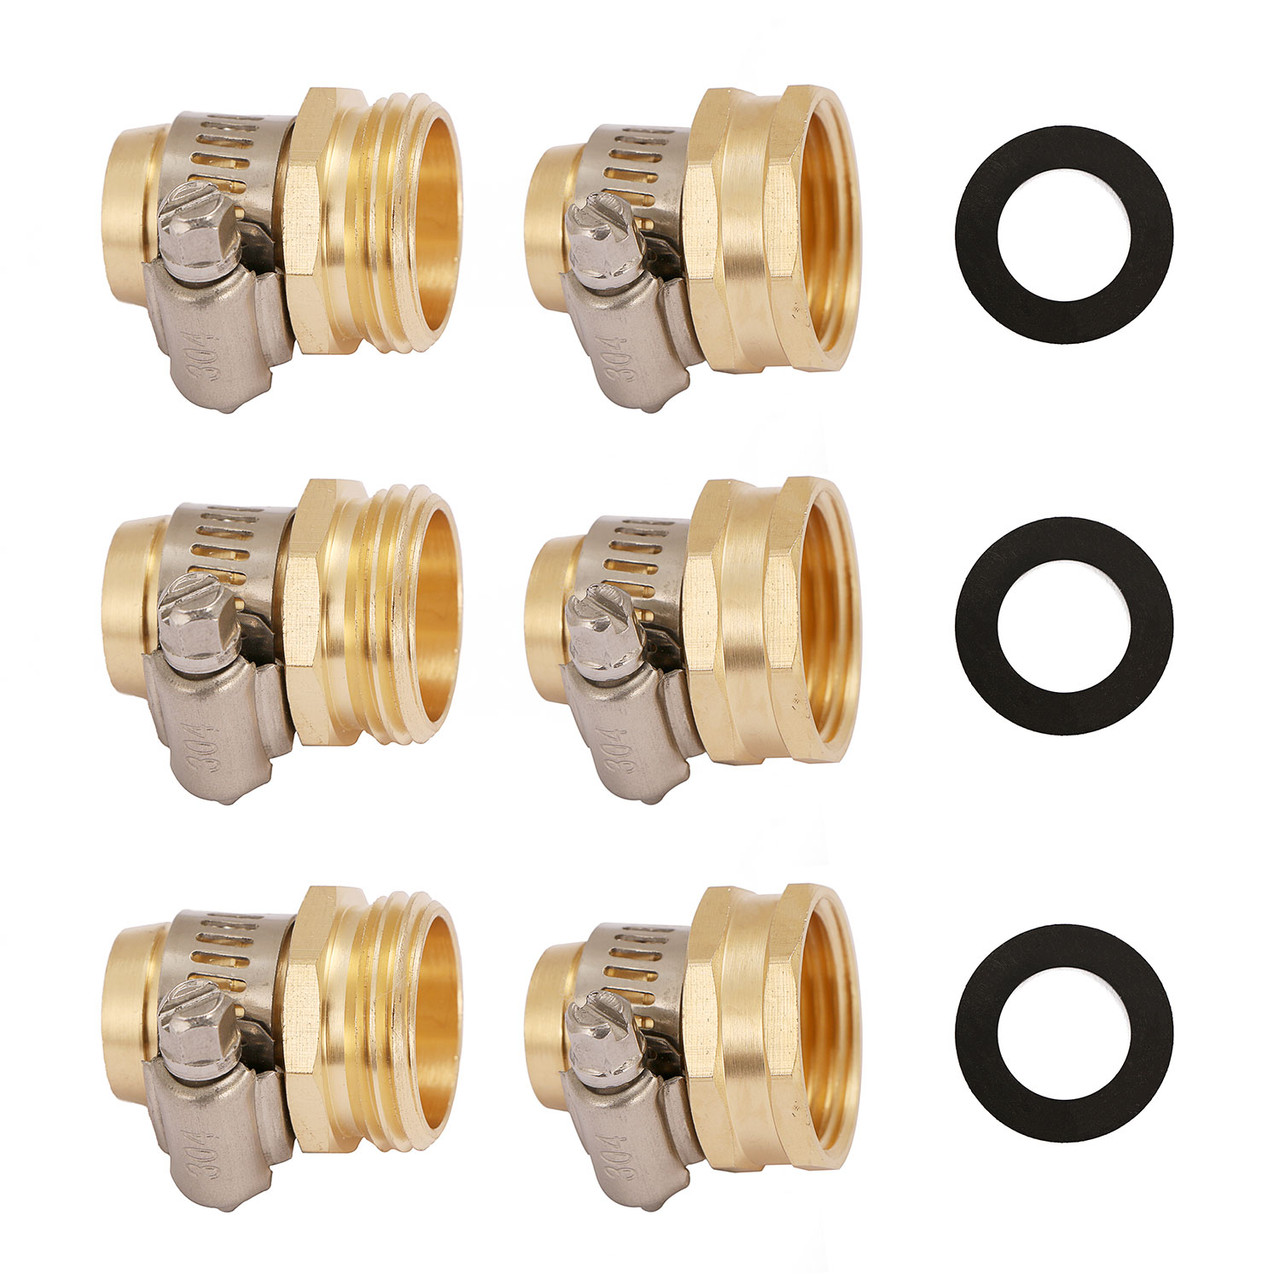 Brass Garden Hose Connector with Stainless Steel Clamps, Male and Female Garden Hose Fittings, 3/4 inch, 3 Sets